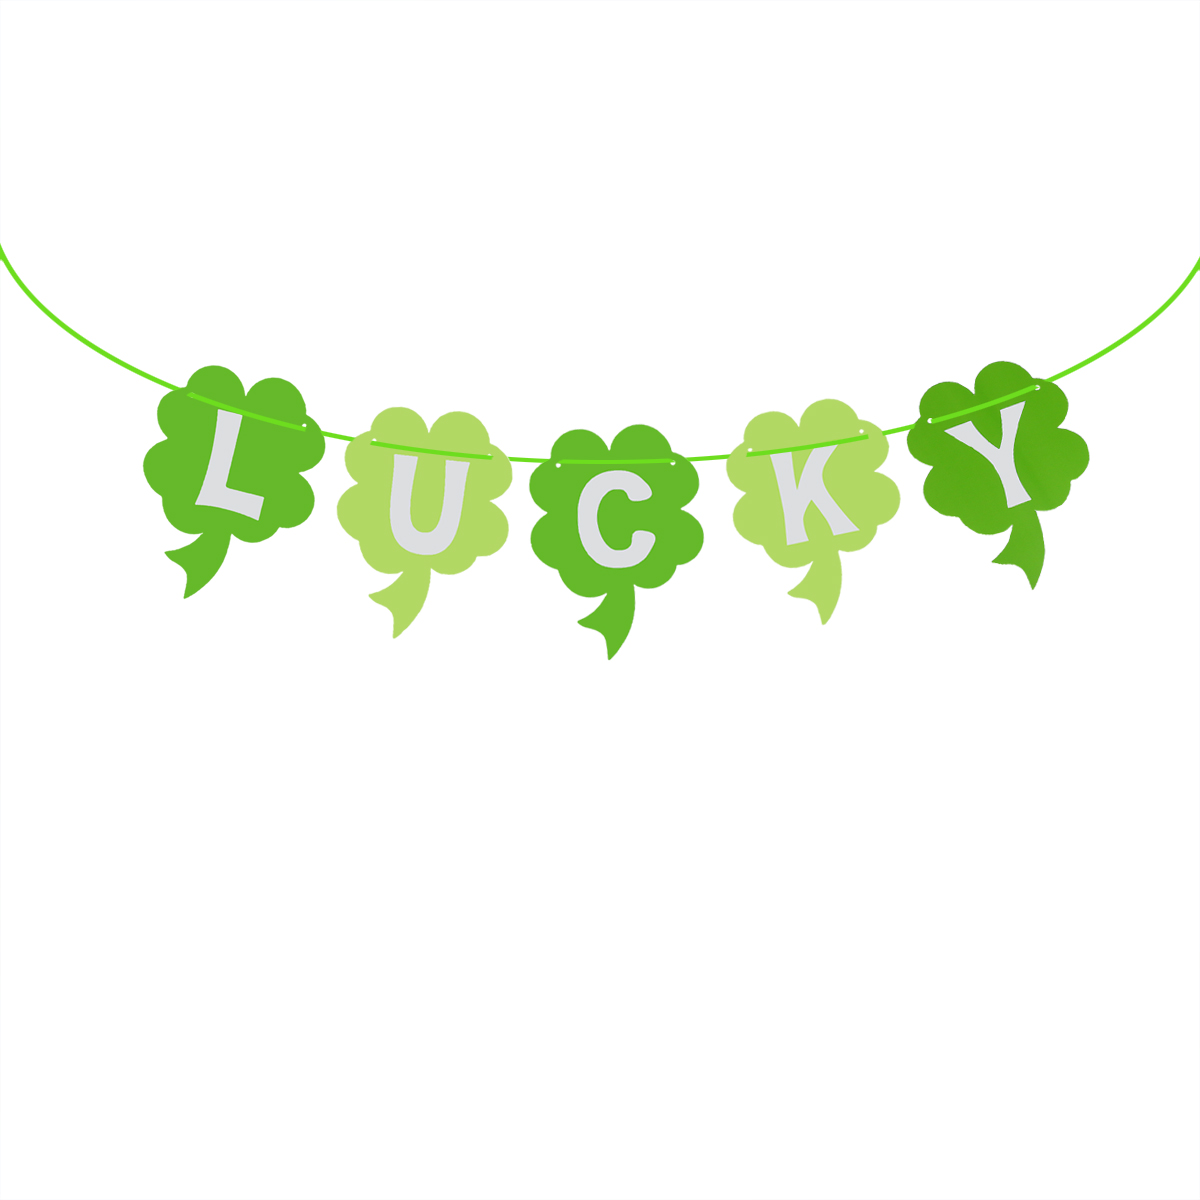 3 Meters Irish Green Shamrock Lucky Paper Banners Four Leaf Clover